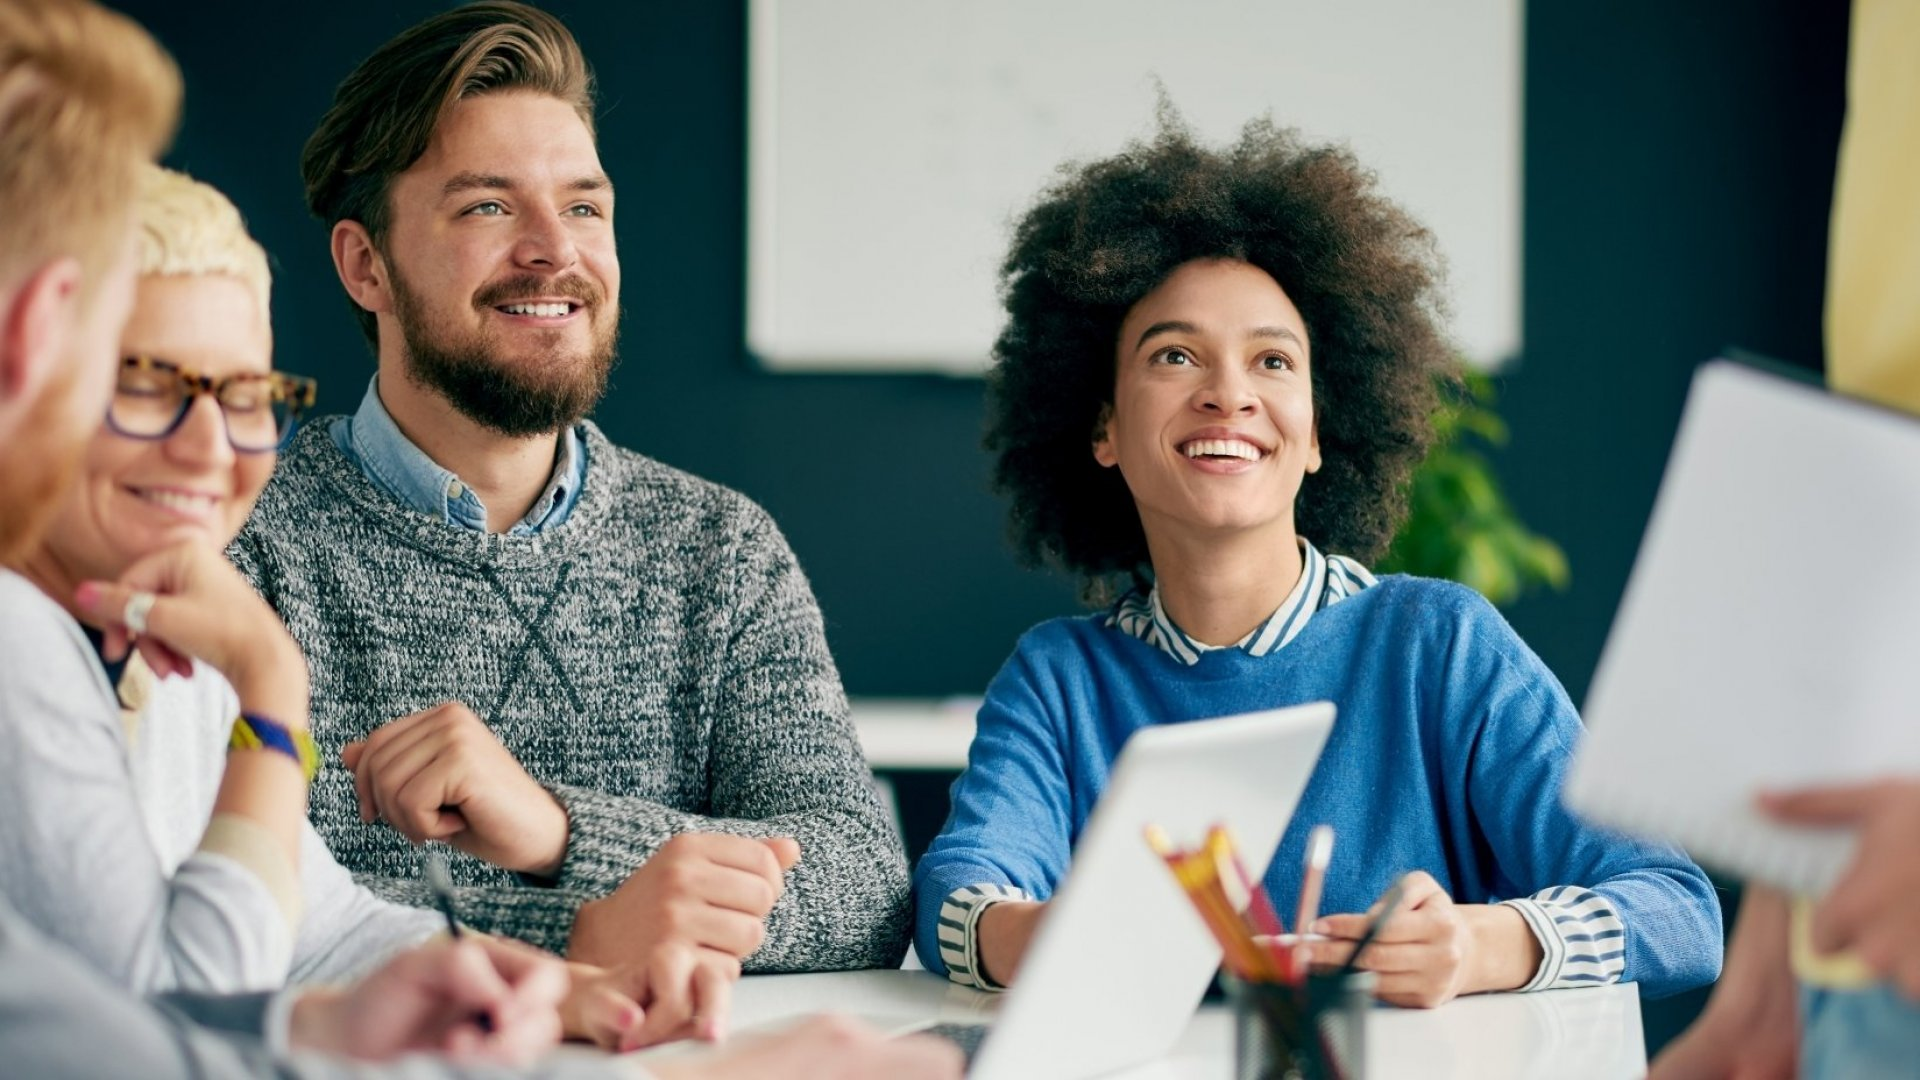 Want Happier Employees? Here Are 5 Powerfully Simple Steps to Increase Happiness at Work